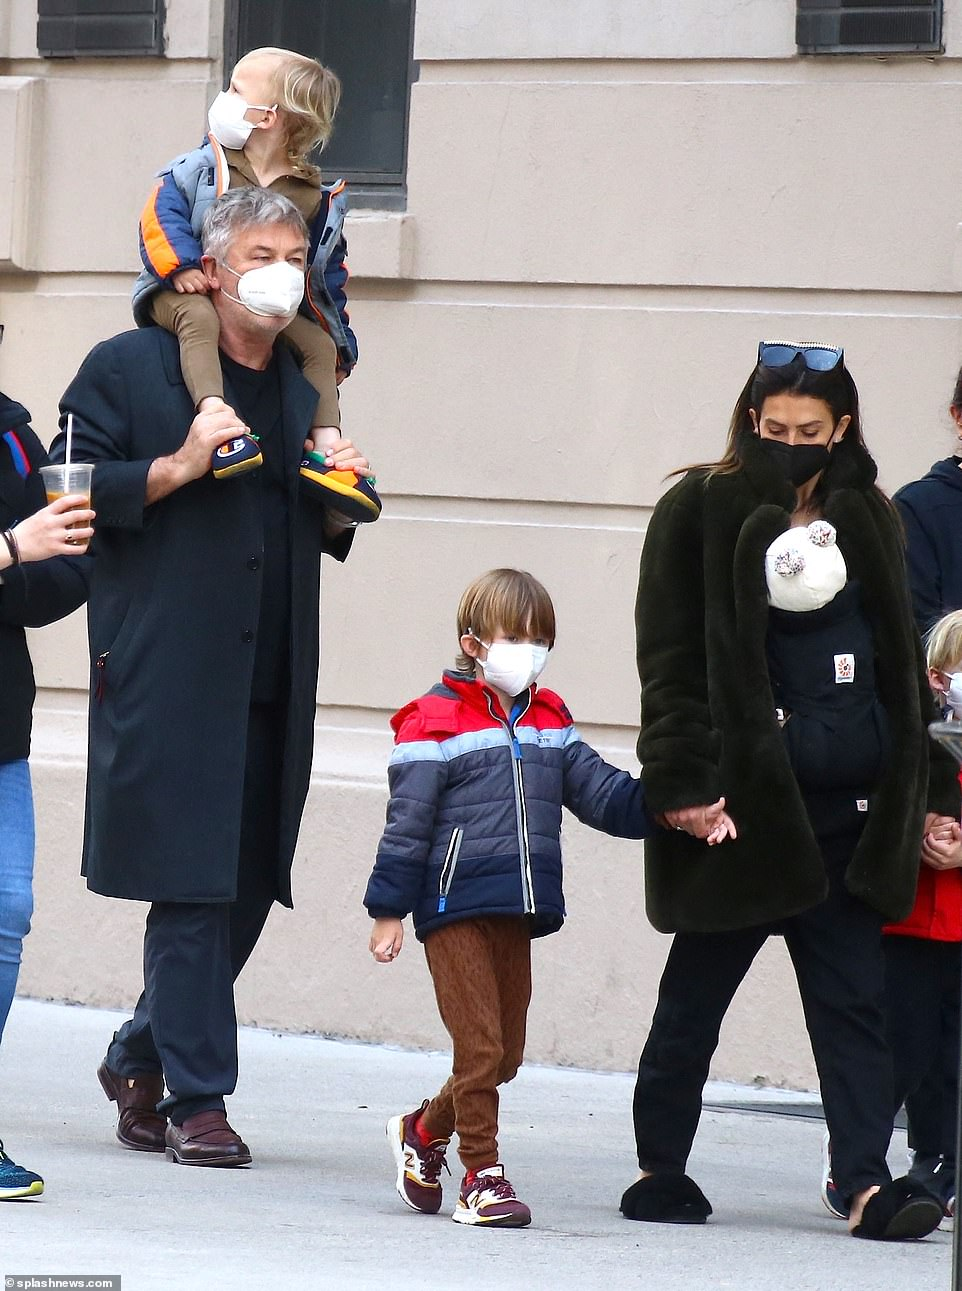 Safety precautions: The family were pictured wearing masks as they took safety measures against the spread of COVID-19 seriously, and Rafael, five, was seen holding his mum's hand